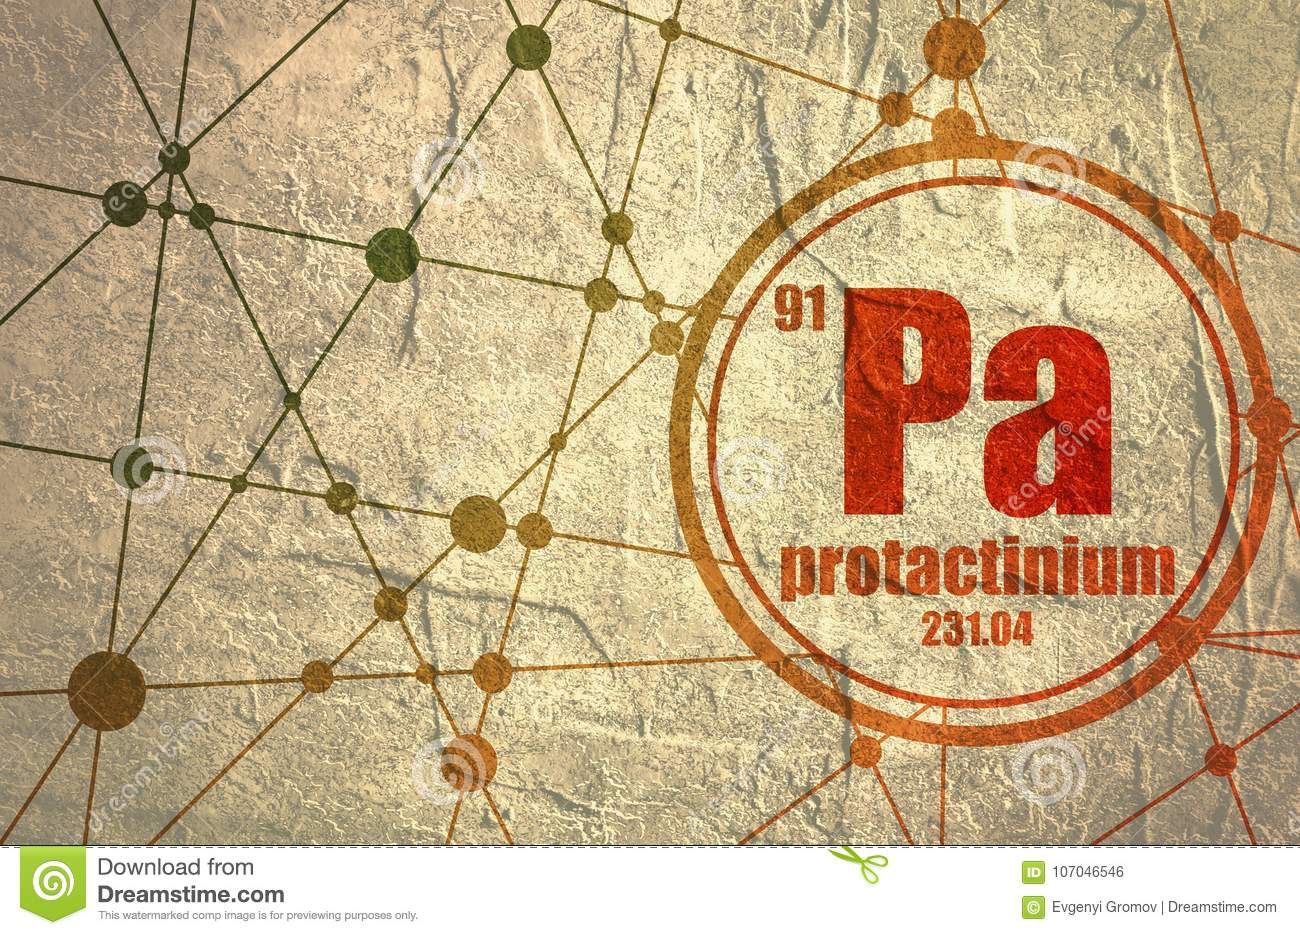 protactinium chemical element protactinium chemical element sign atomic number atomic weight chemical element periodic 107046546 protactinium chemical element stock illustration illustration of